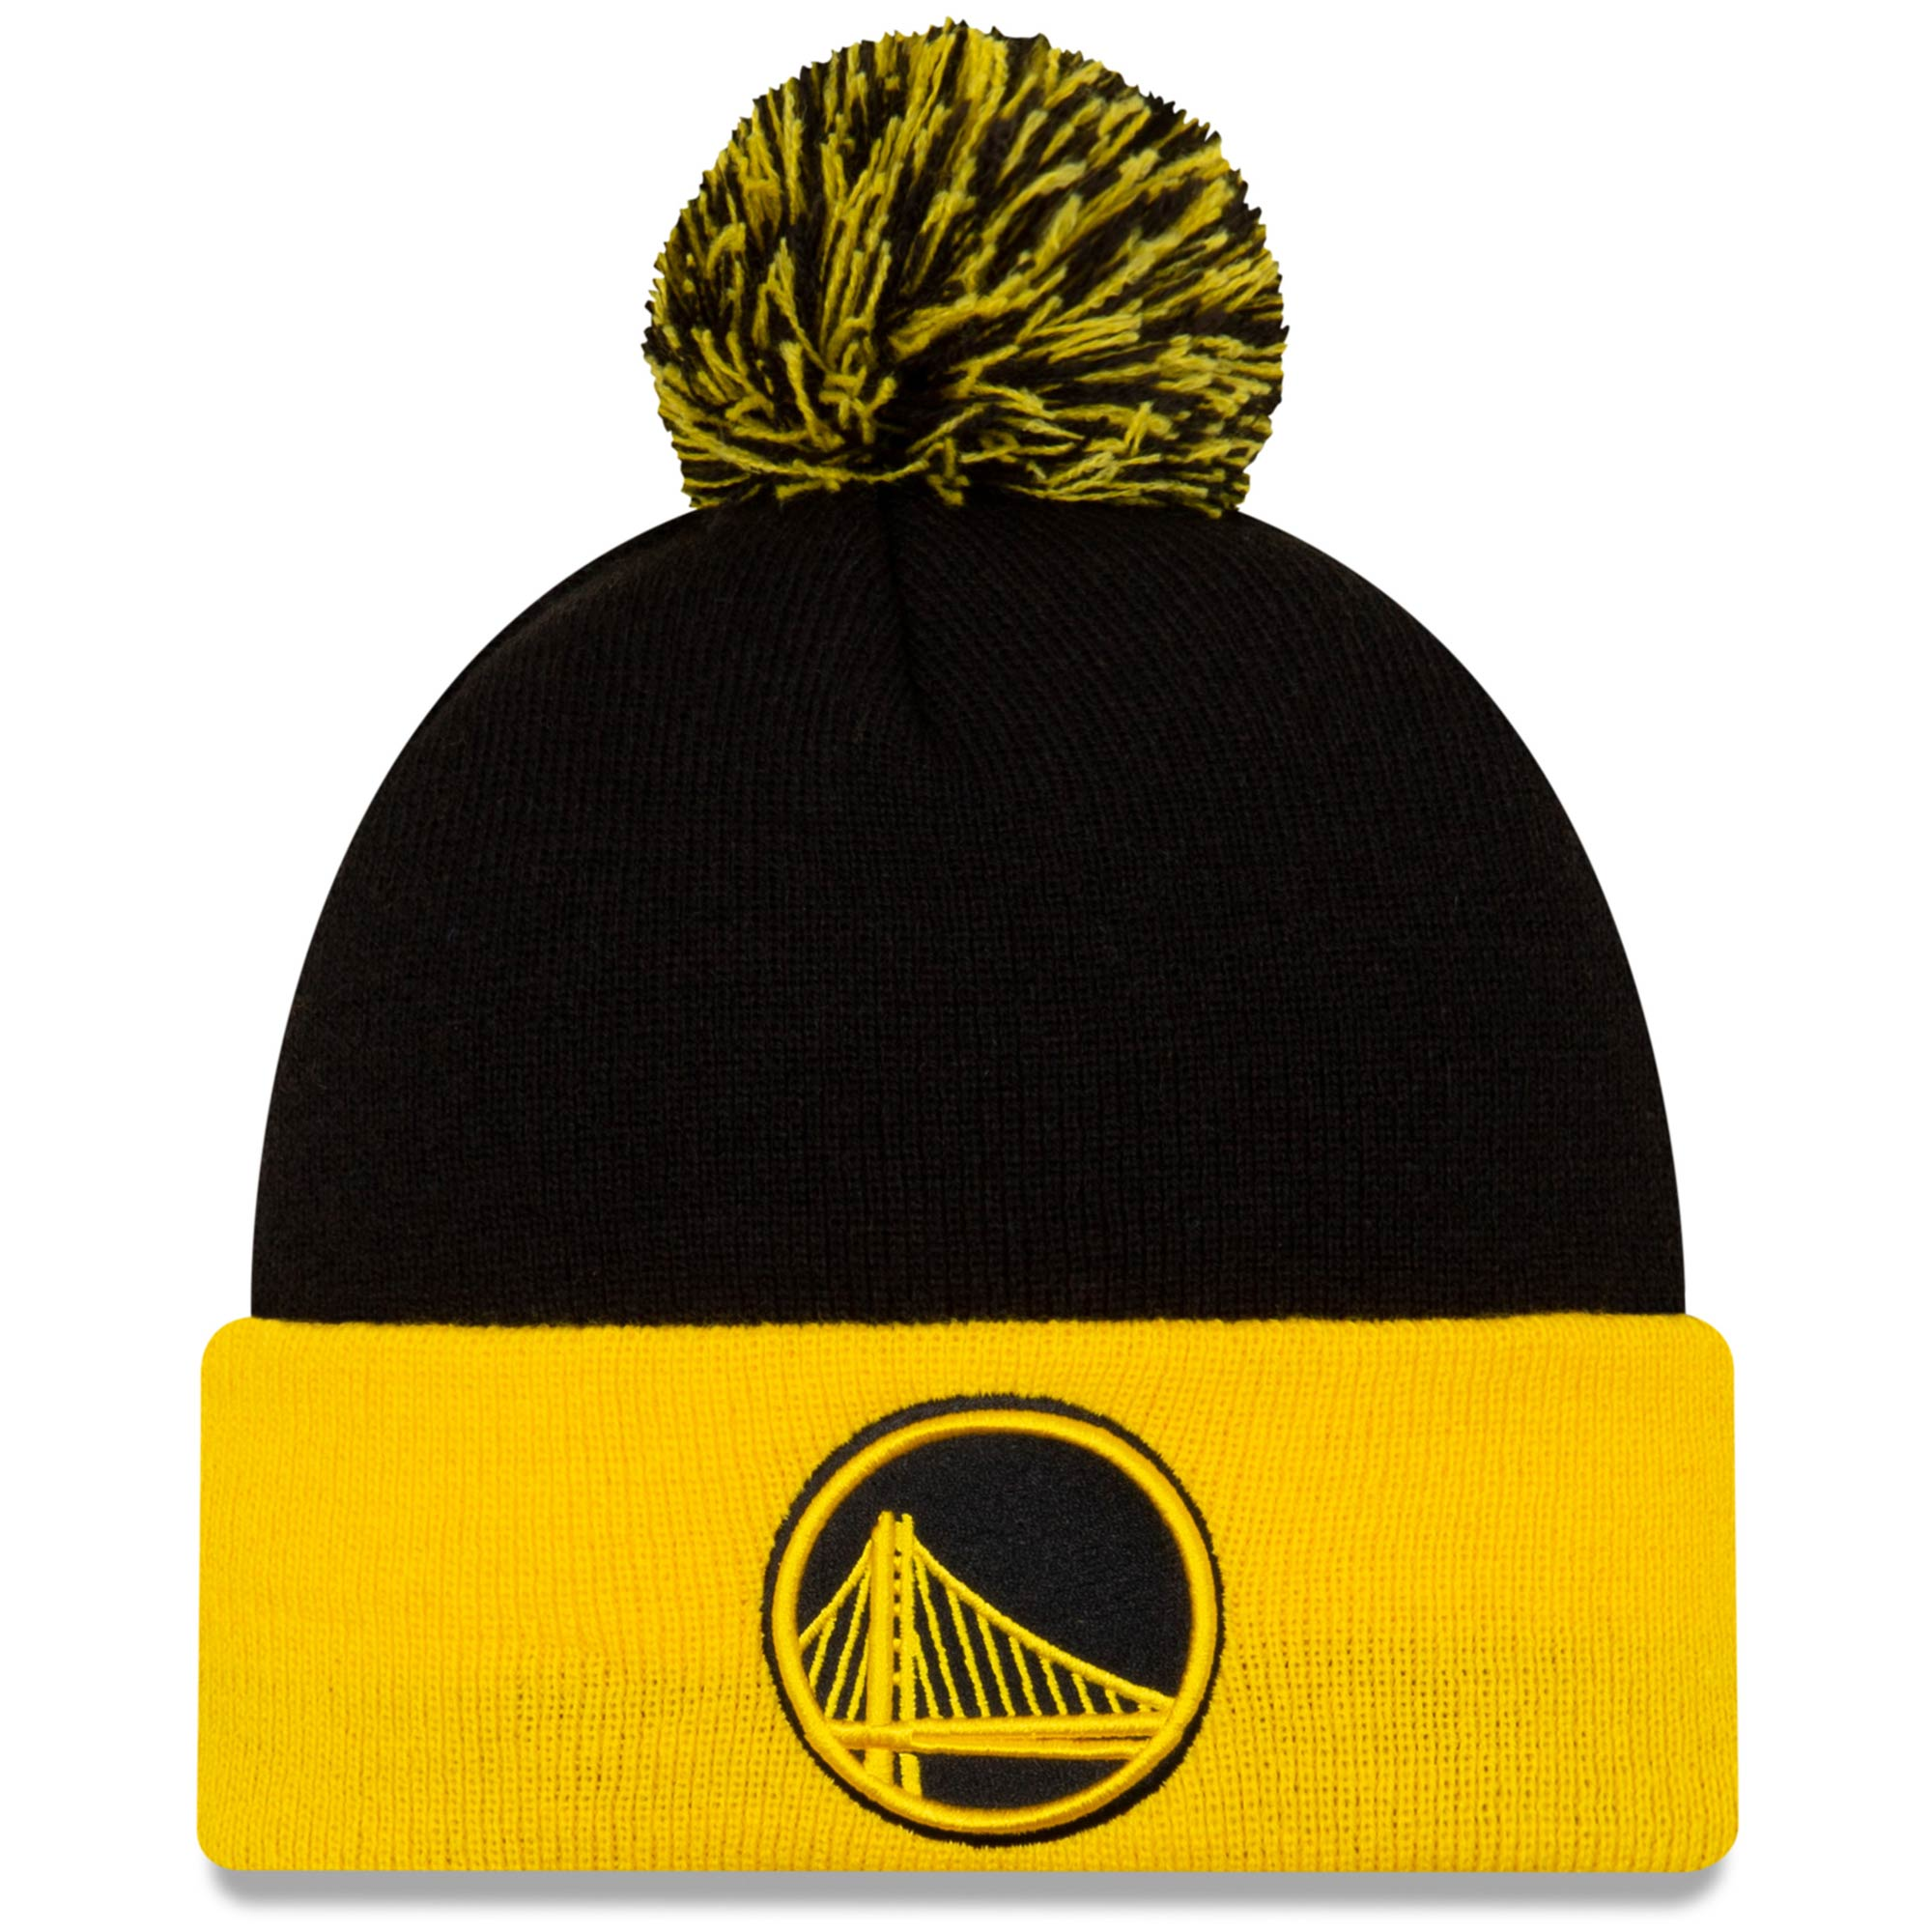 Golden State Warriors New Era Cuffed Knit Hat with Pom - Black/Gold